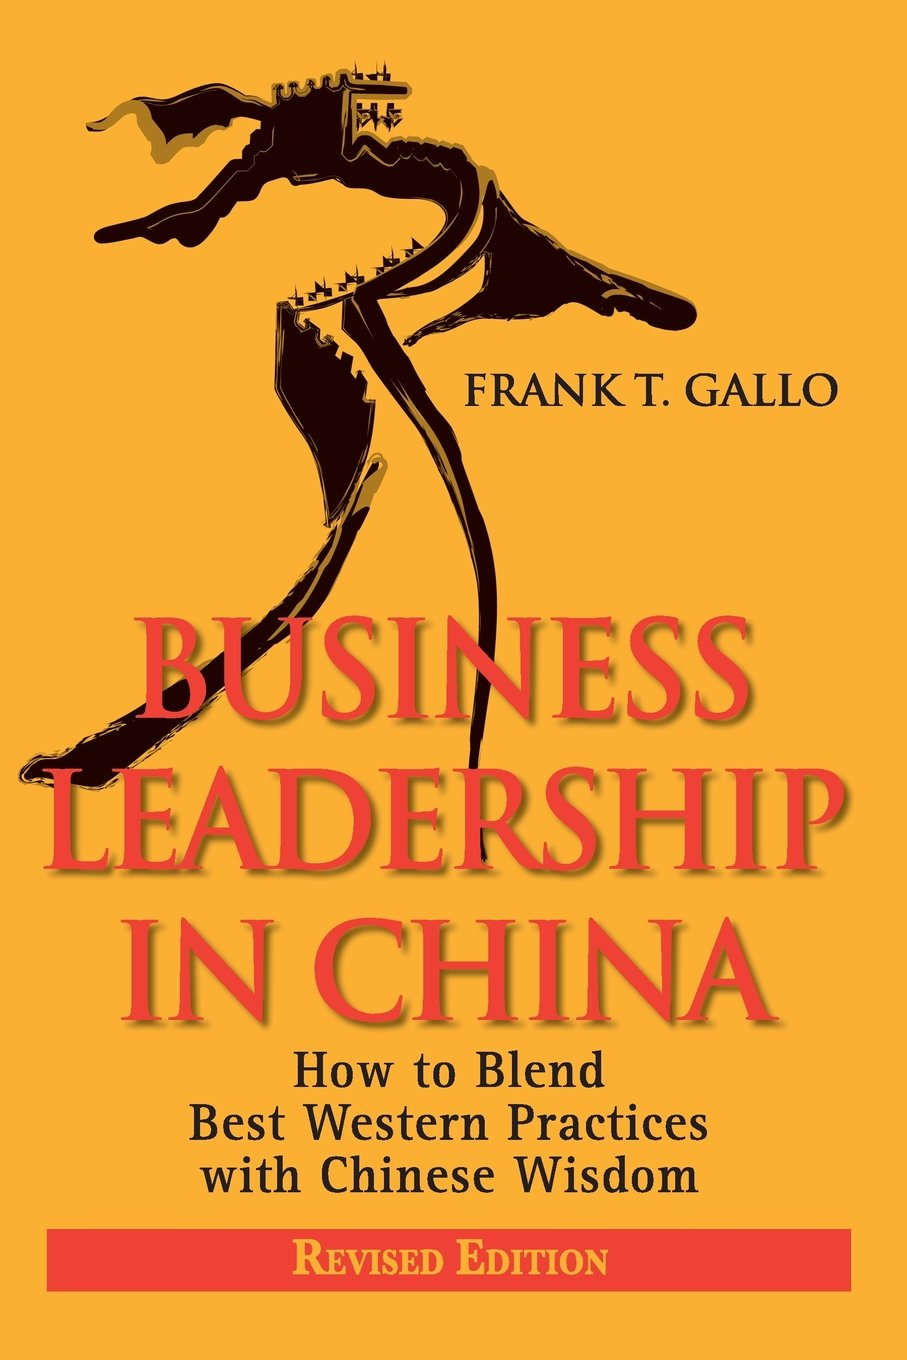 Business Leadership in China: How to Blend Best Western Practices with Chinese Wisdom